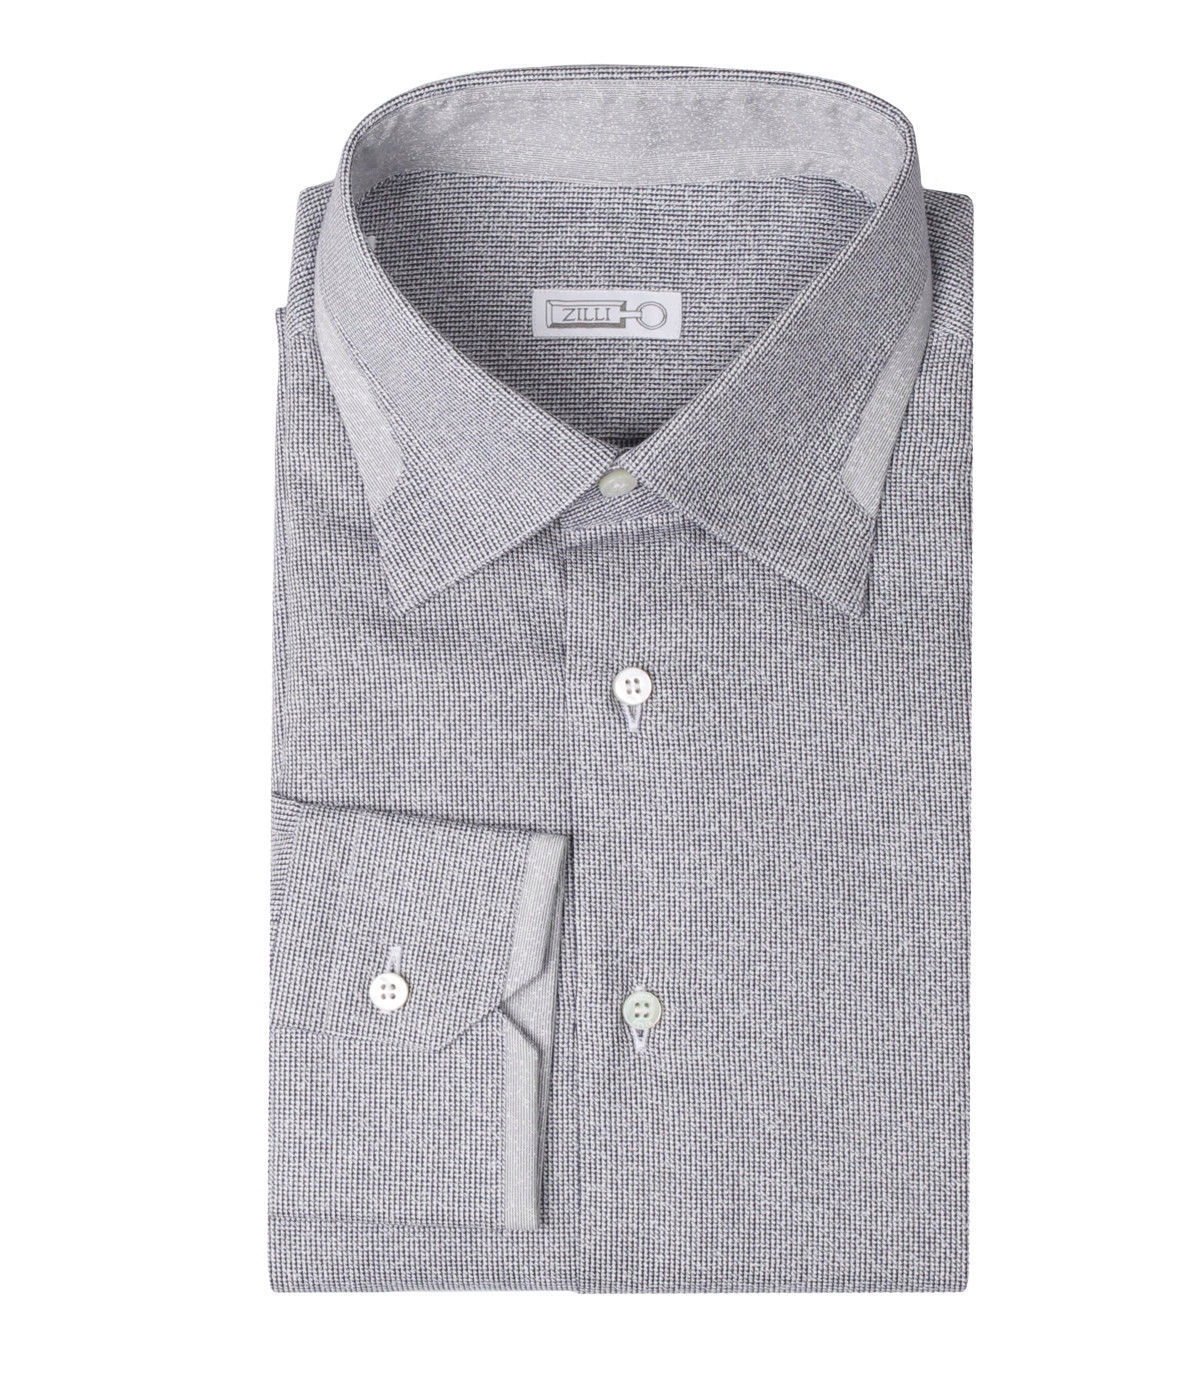 Zilli Men's Grey Patterned Cotton Dress Shirt Regular fit, size 40(15.75)